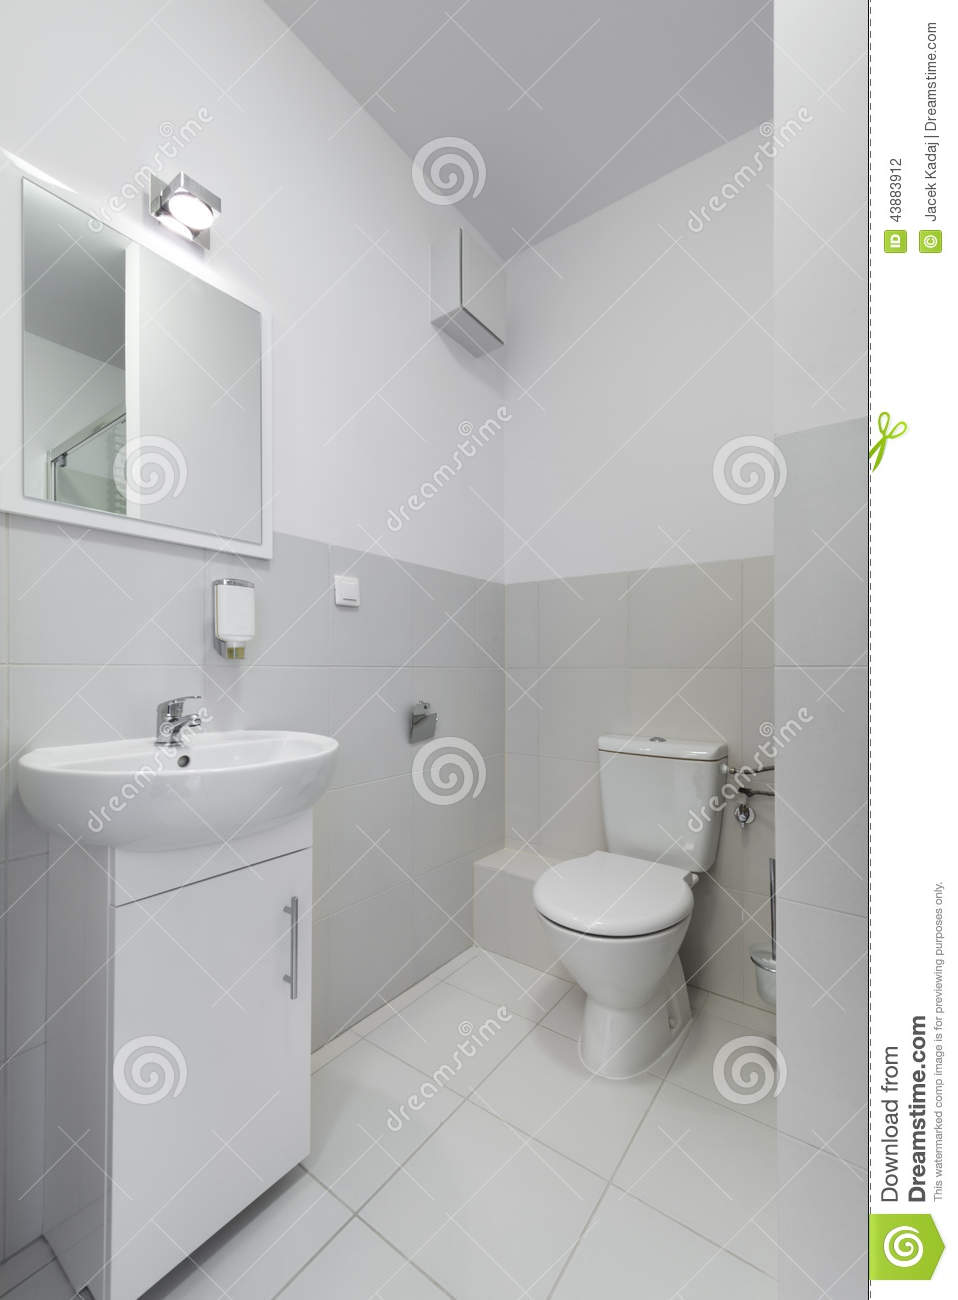 Small And Compact Interior Bathroom Design Stock Photo - Image of ...